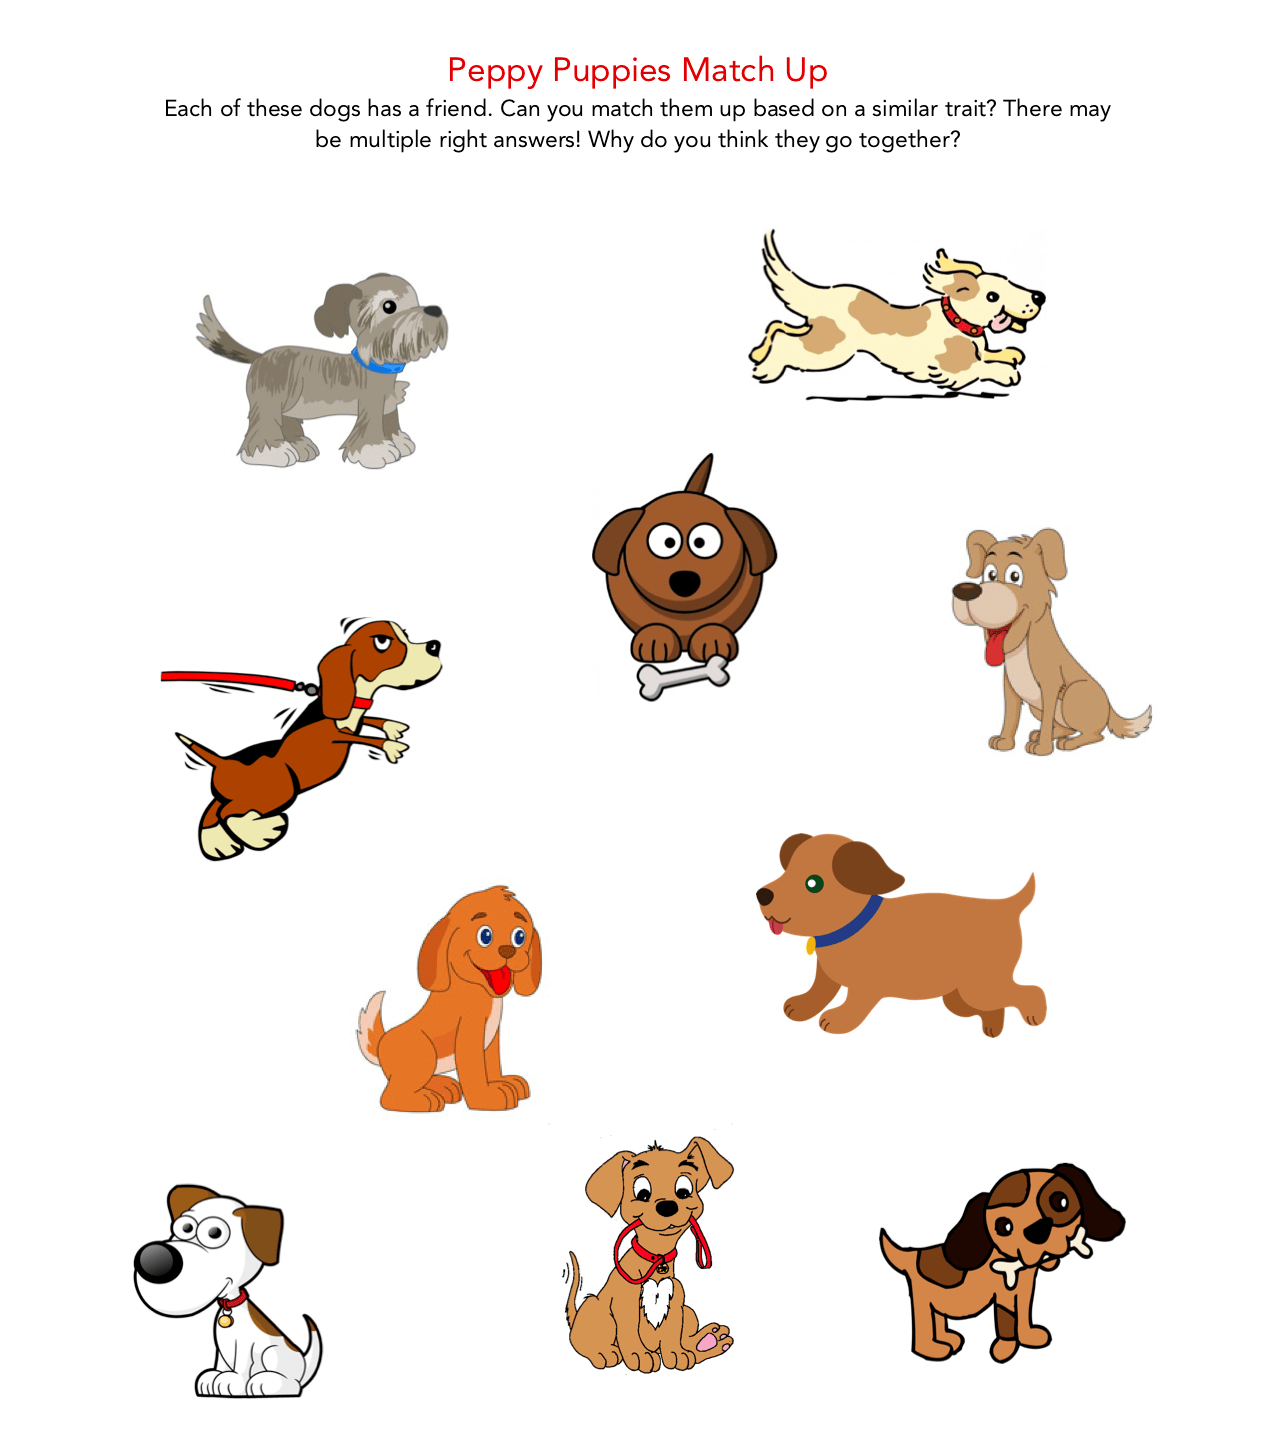 CPB - Peppy Puppies Match Up Puzzle